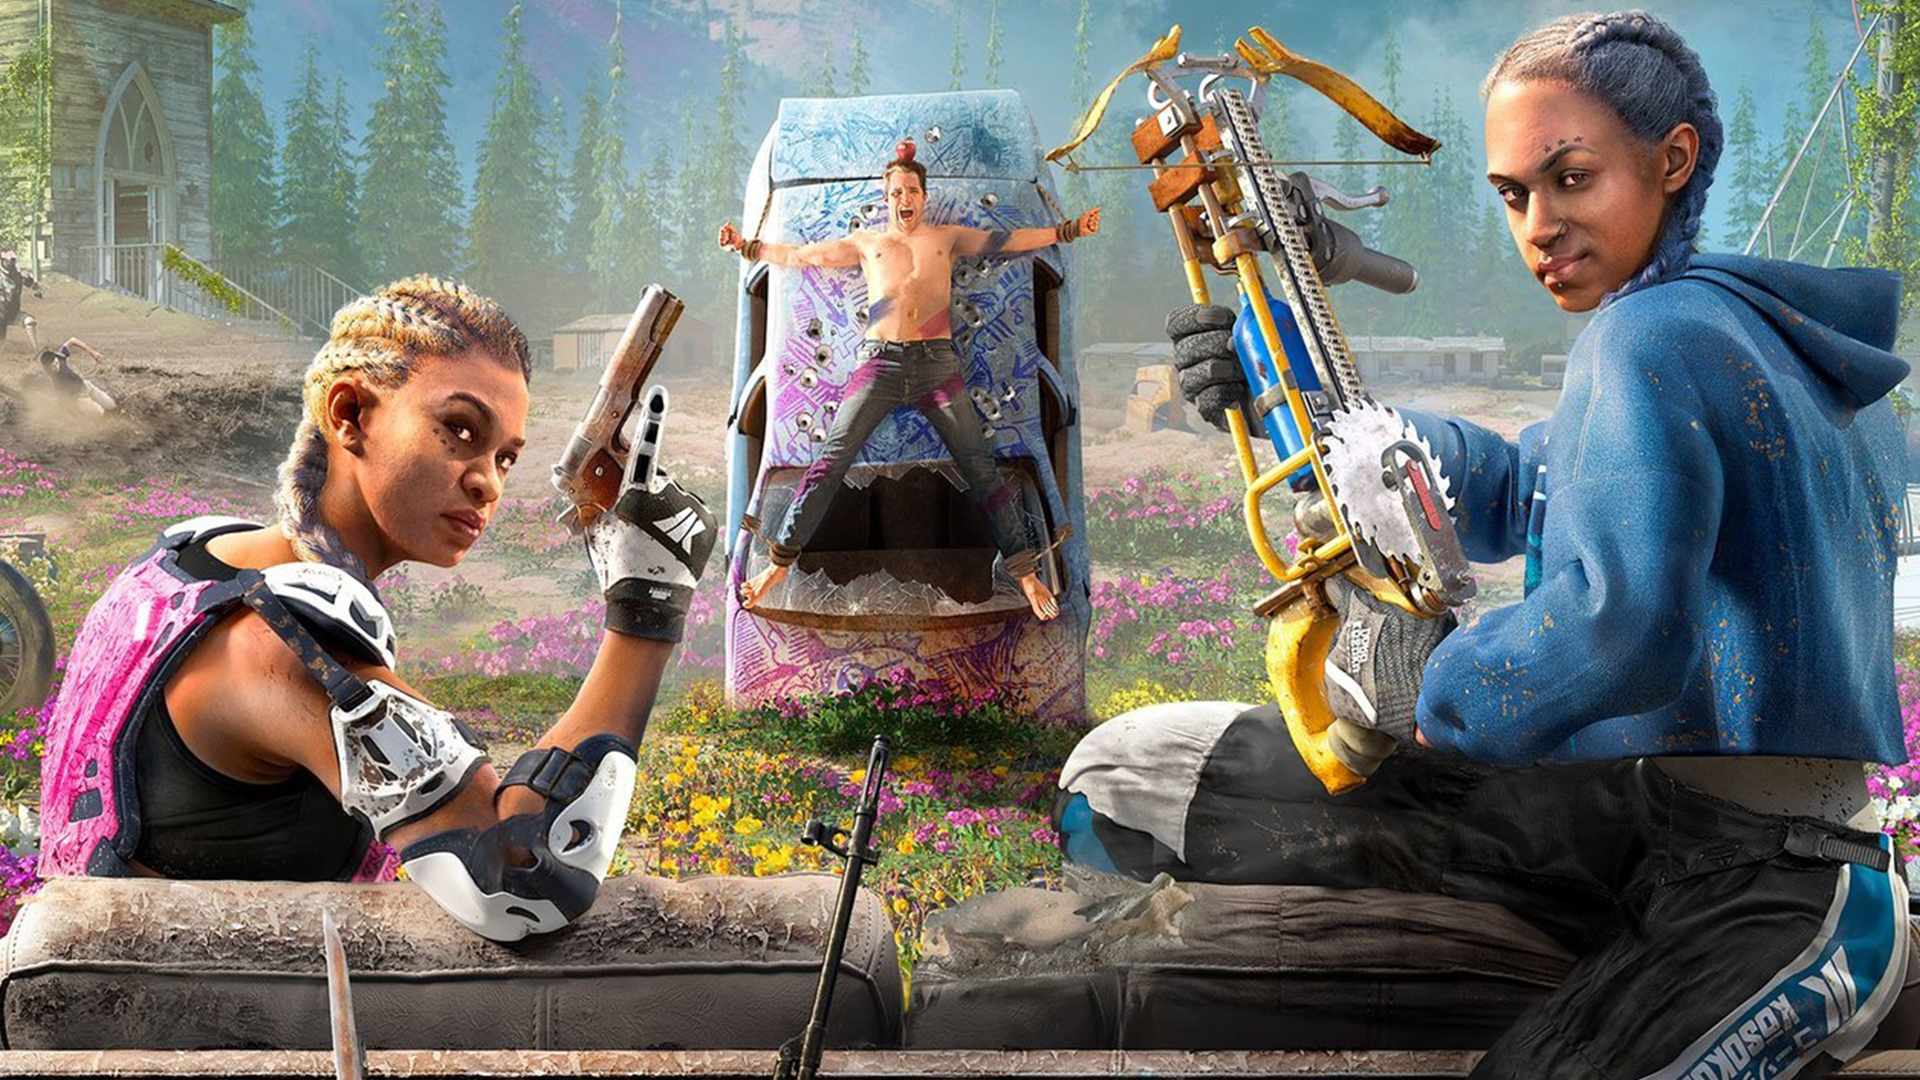 Far Cry New Dawn: PS4/Pro/Xbox One/X - Every Console Tested!